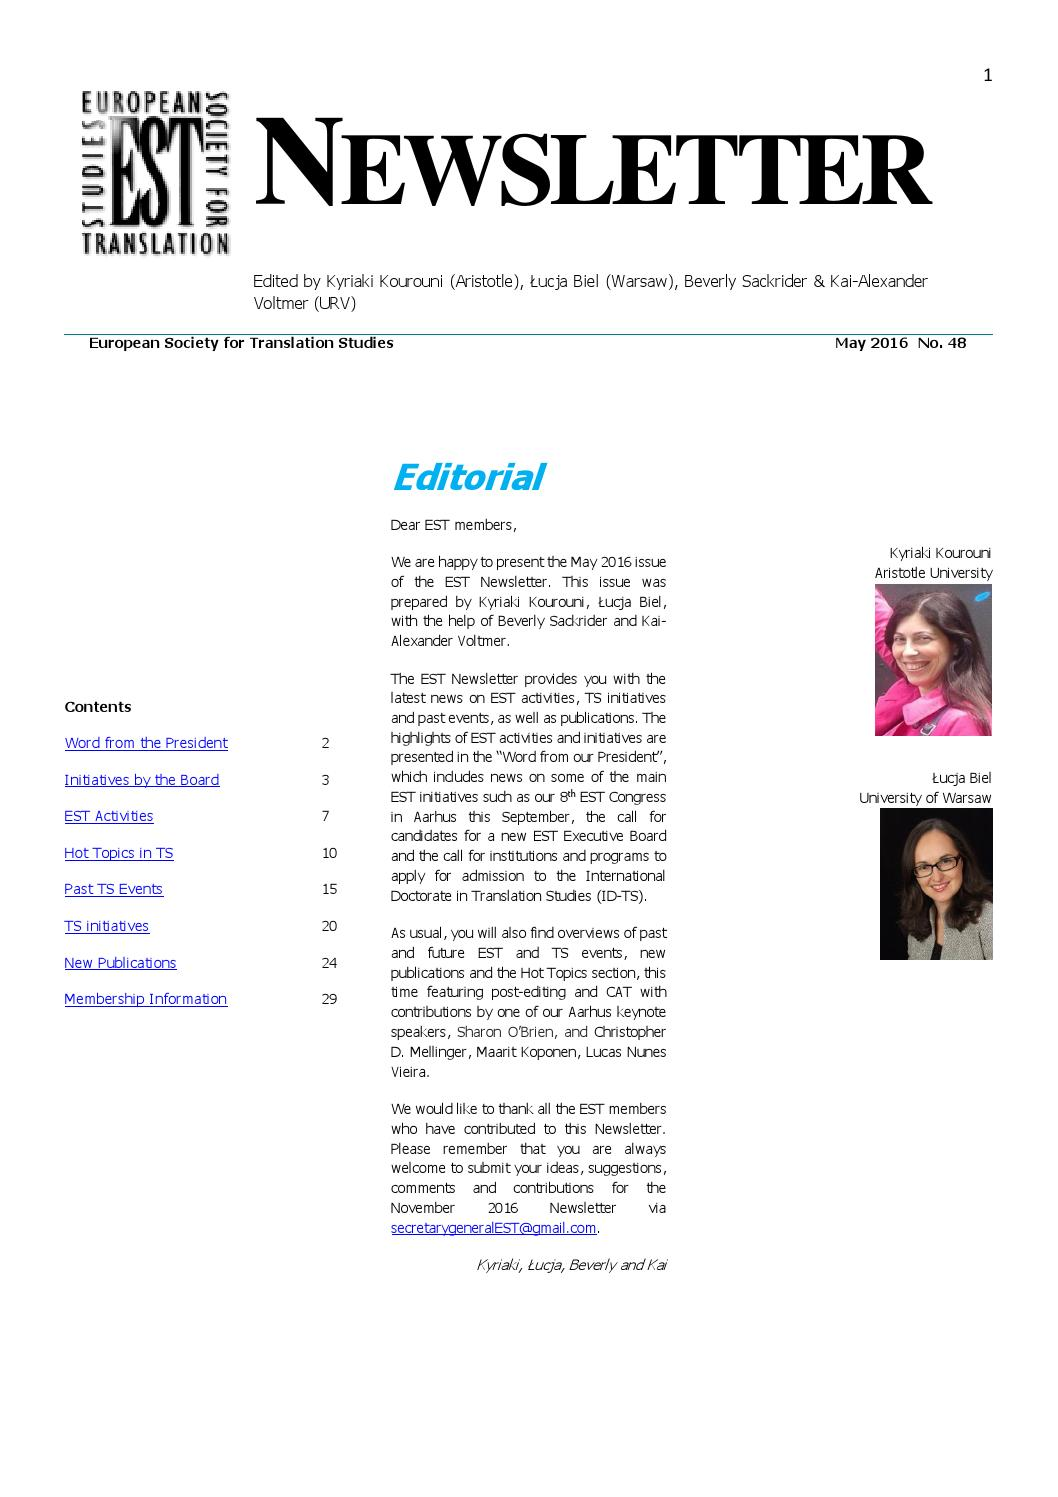 2016 48 est newsletter by european society for translation studies 2016 48 est newsletter by european society for translation studies issuu fandeluxe Images